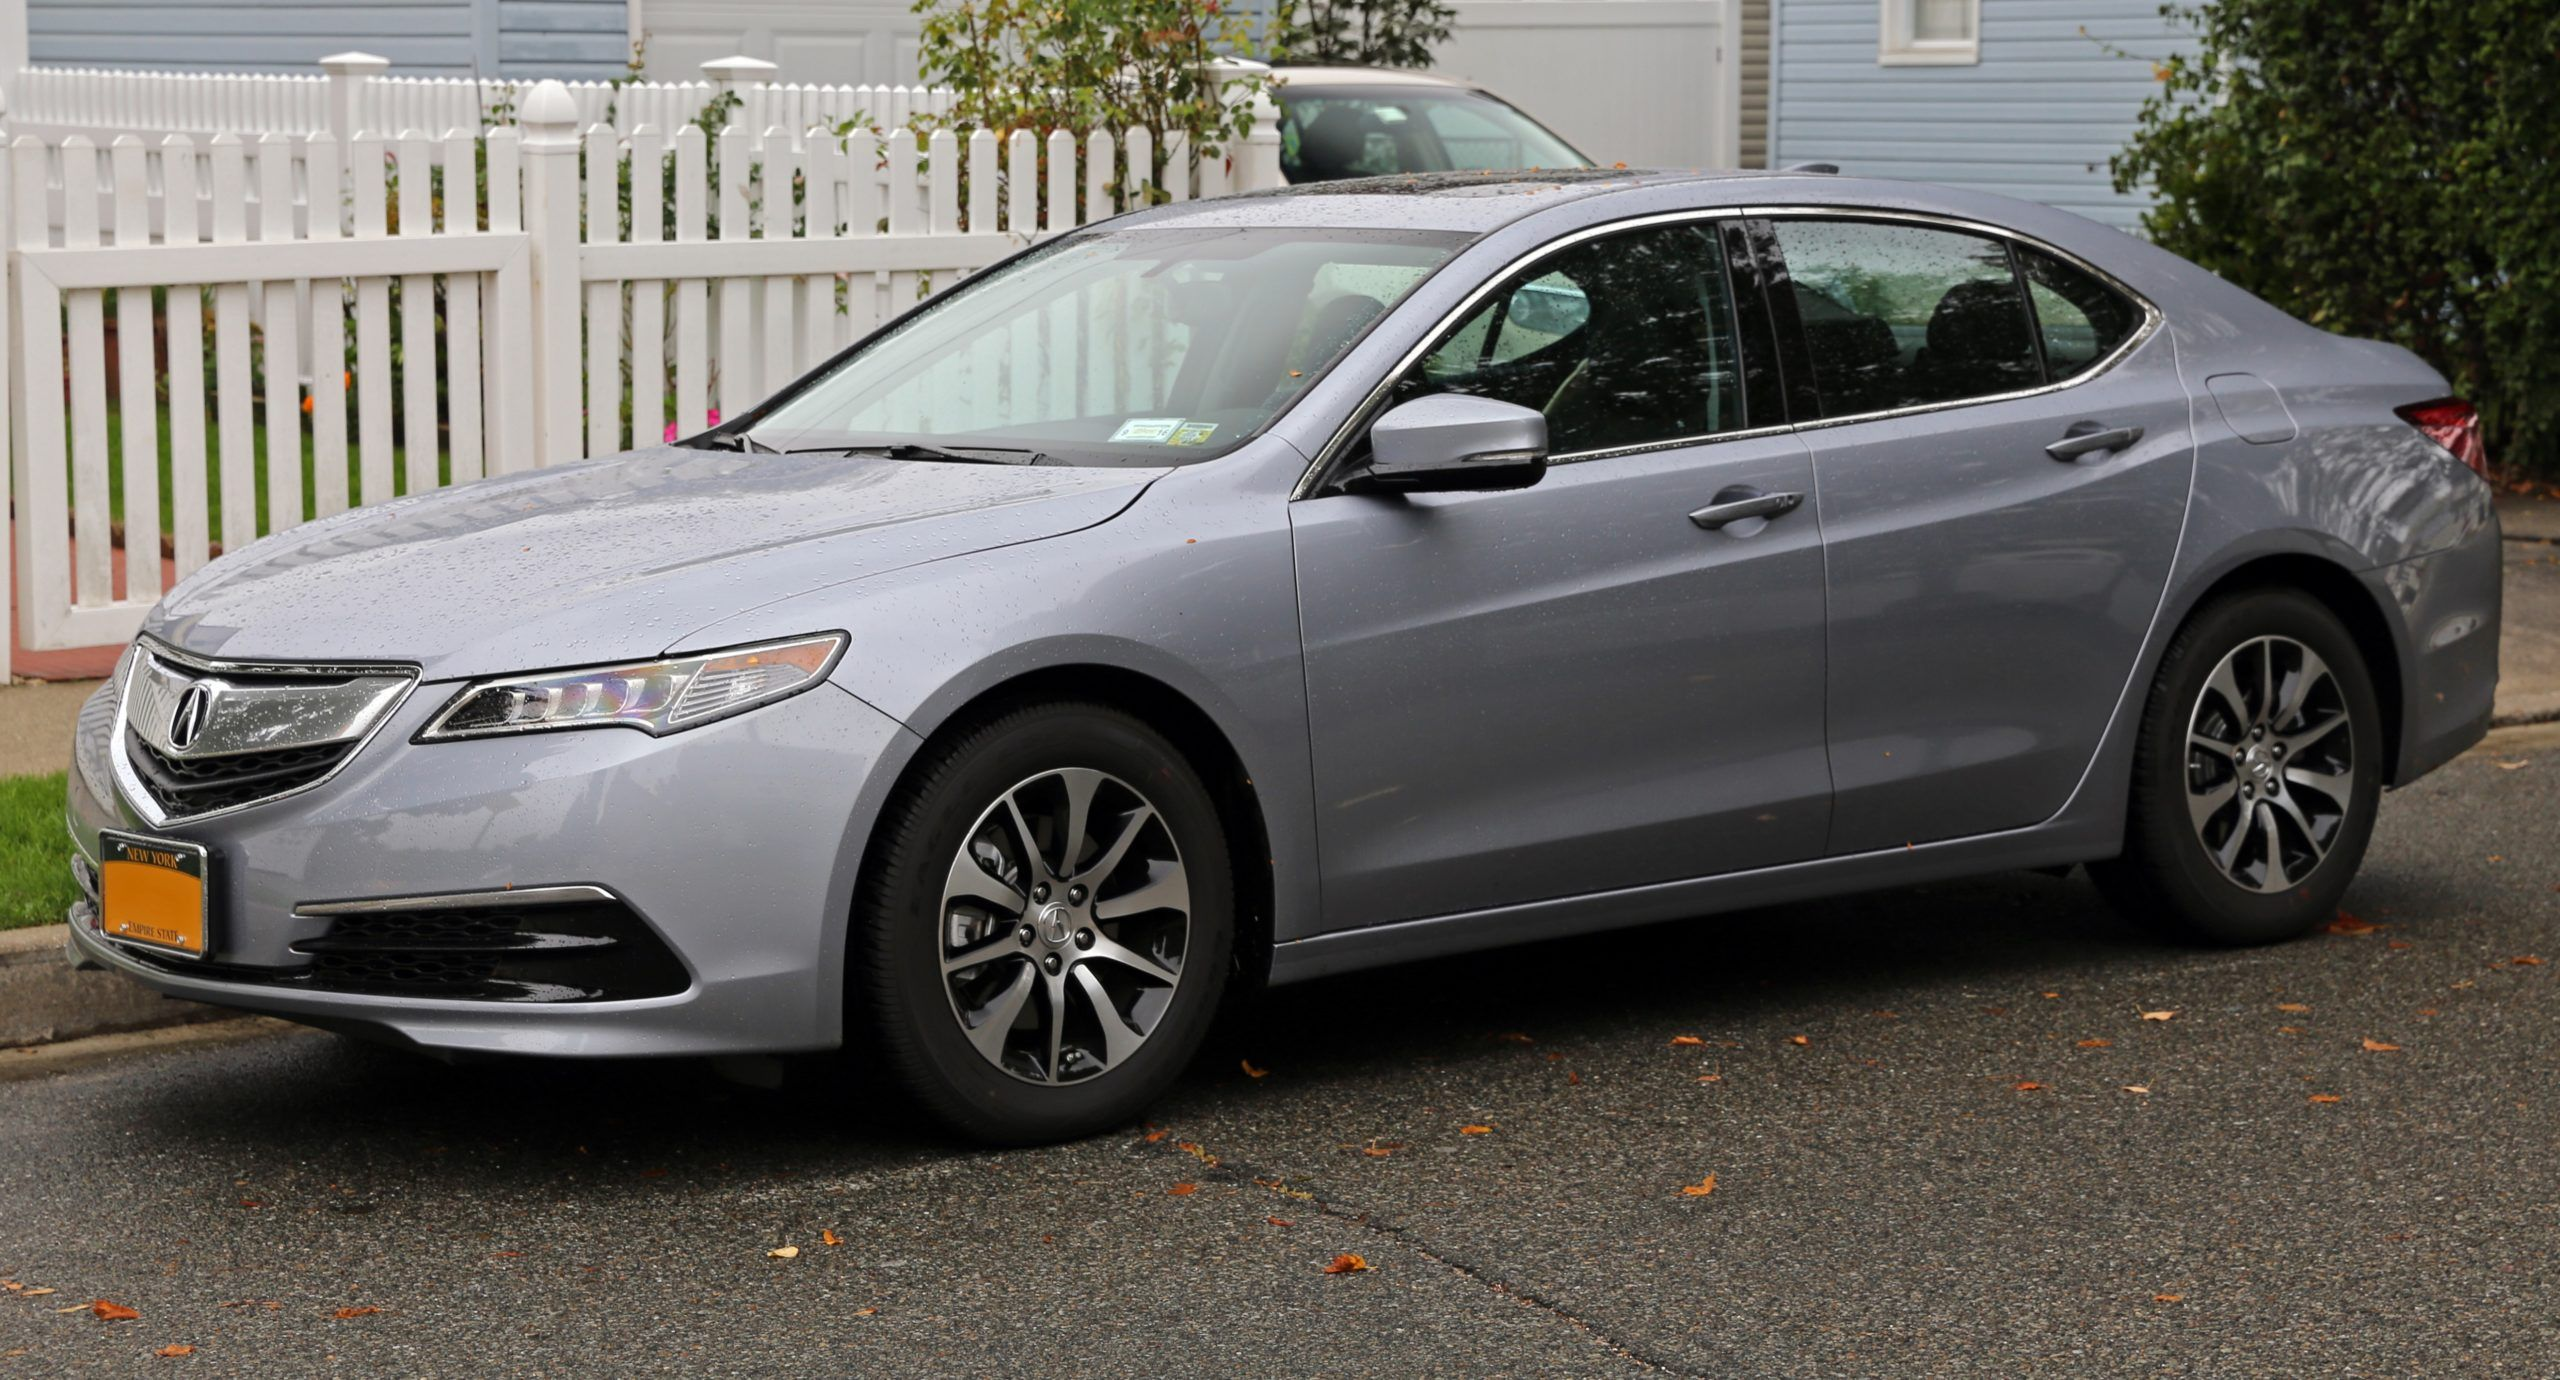 What Will 2020 Acura Station Wagon Design Be Like In The Next 50 Years